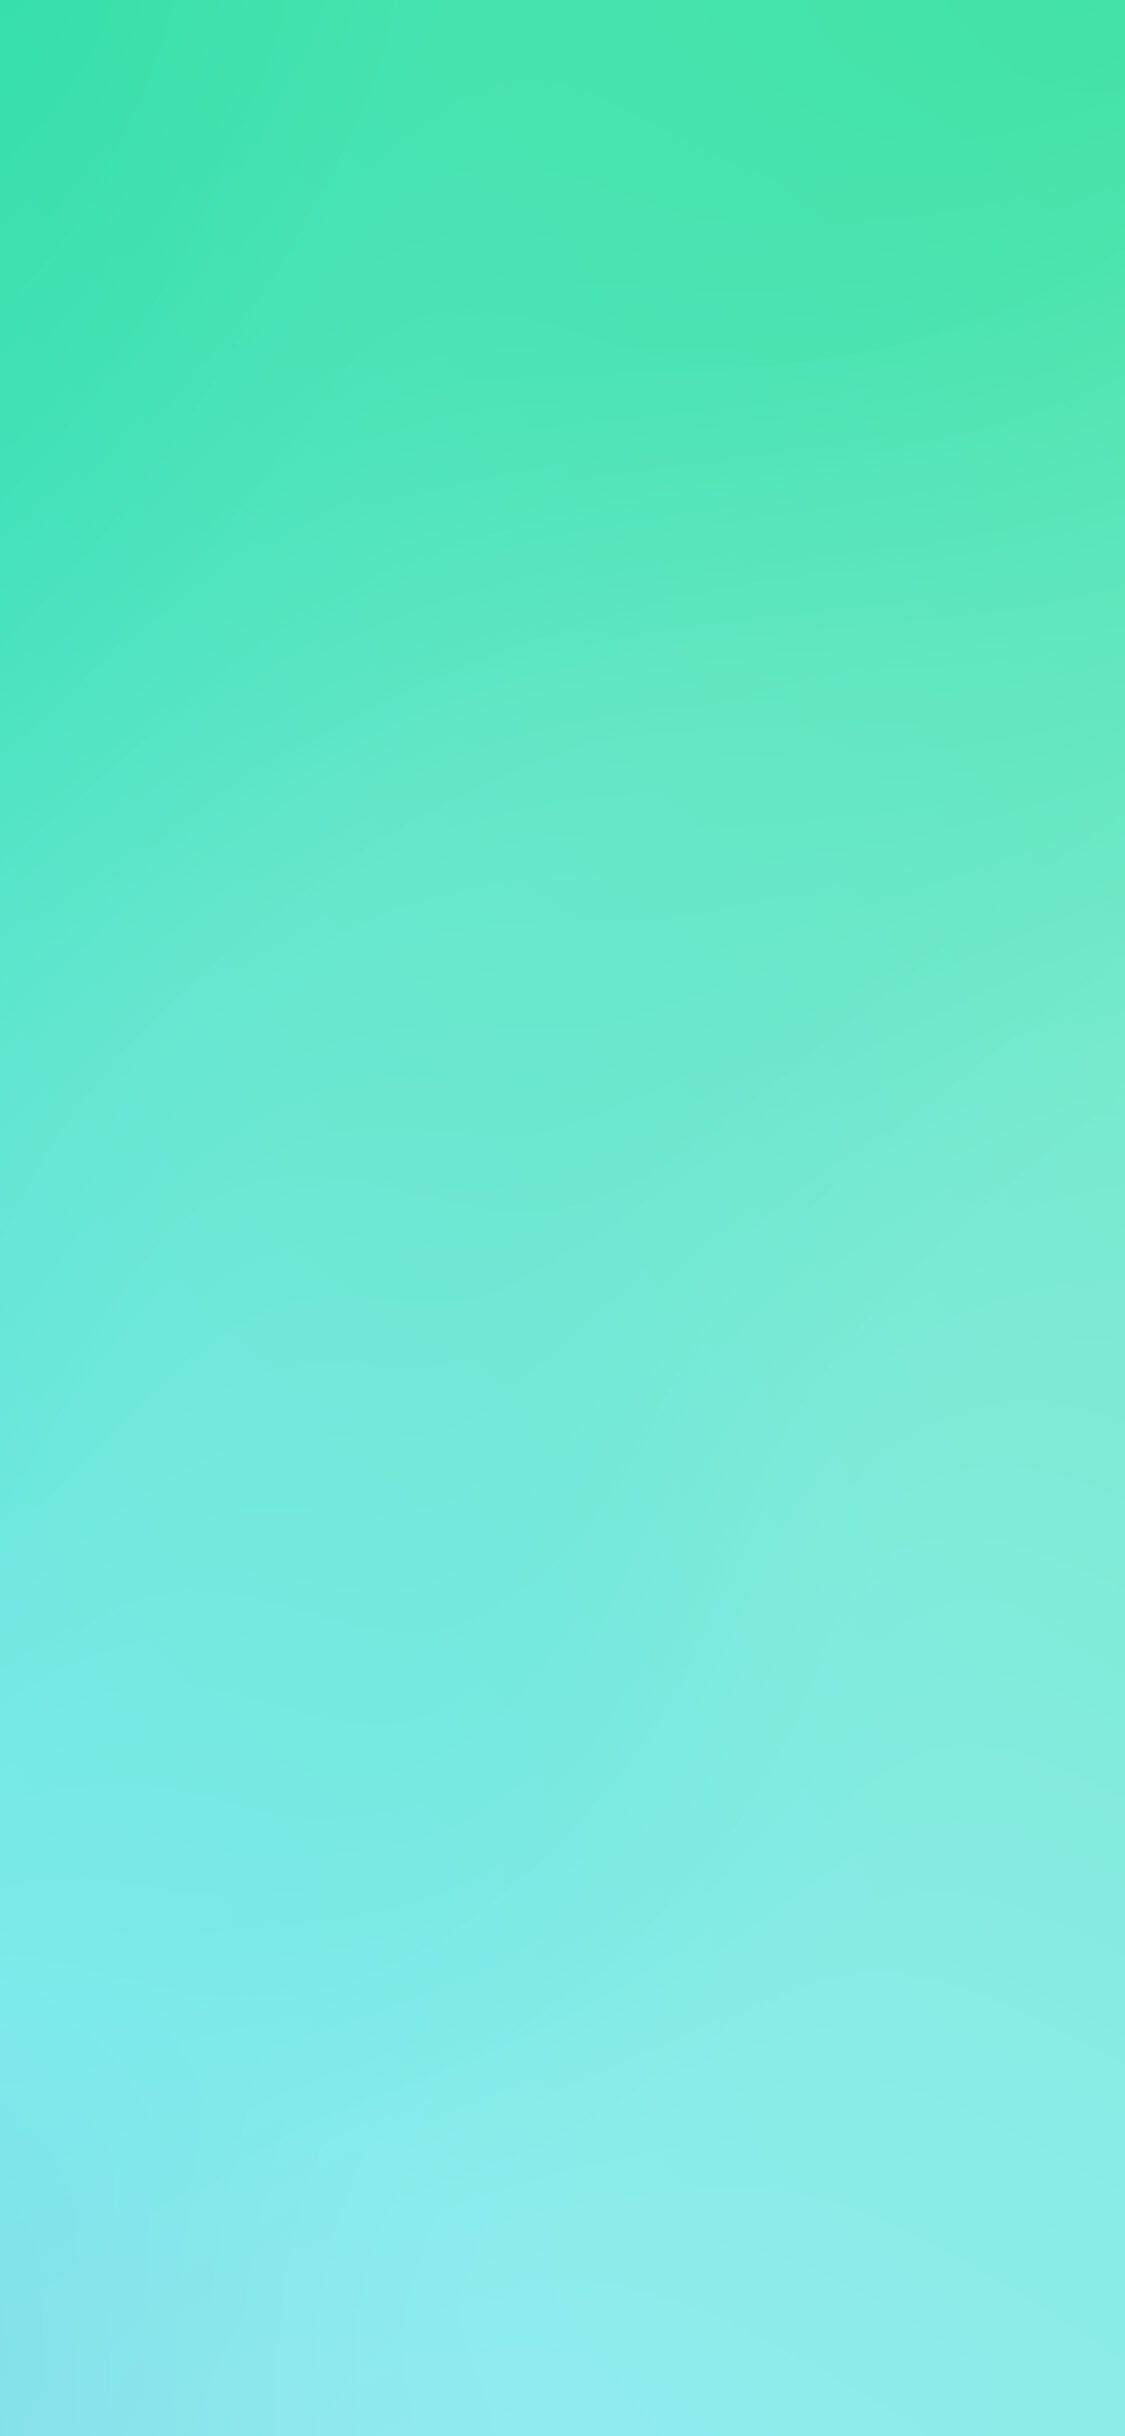 iPhonexpapers.com-Apple-iPhone-wallpaper-sm03-green-blur-gradation